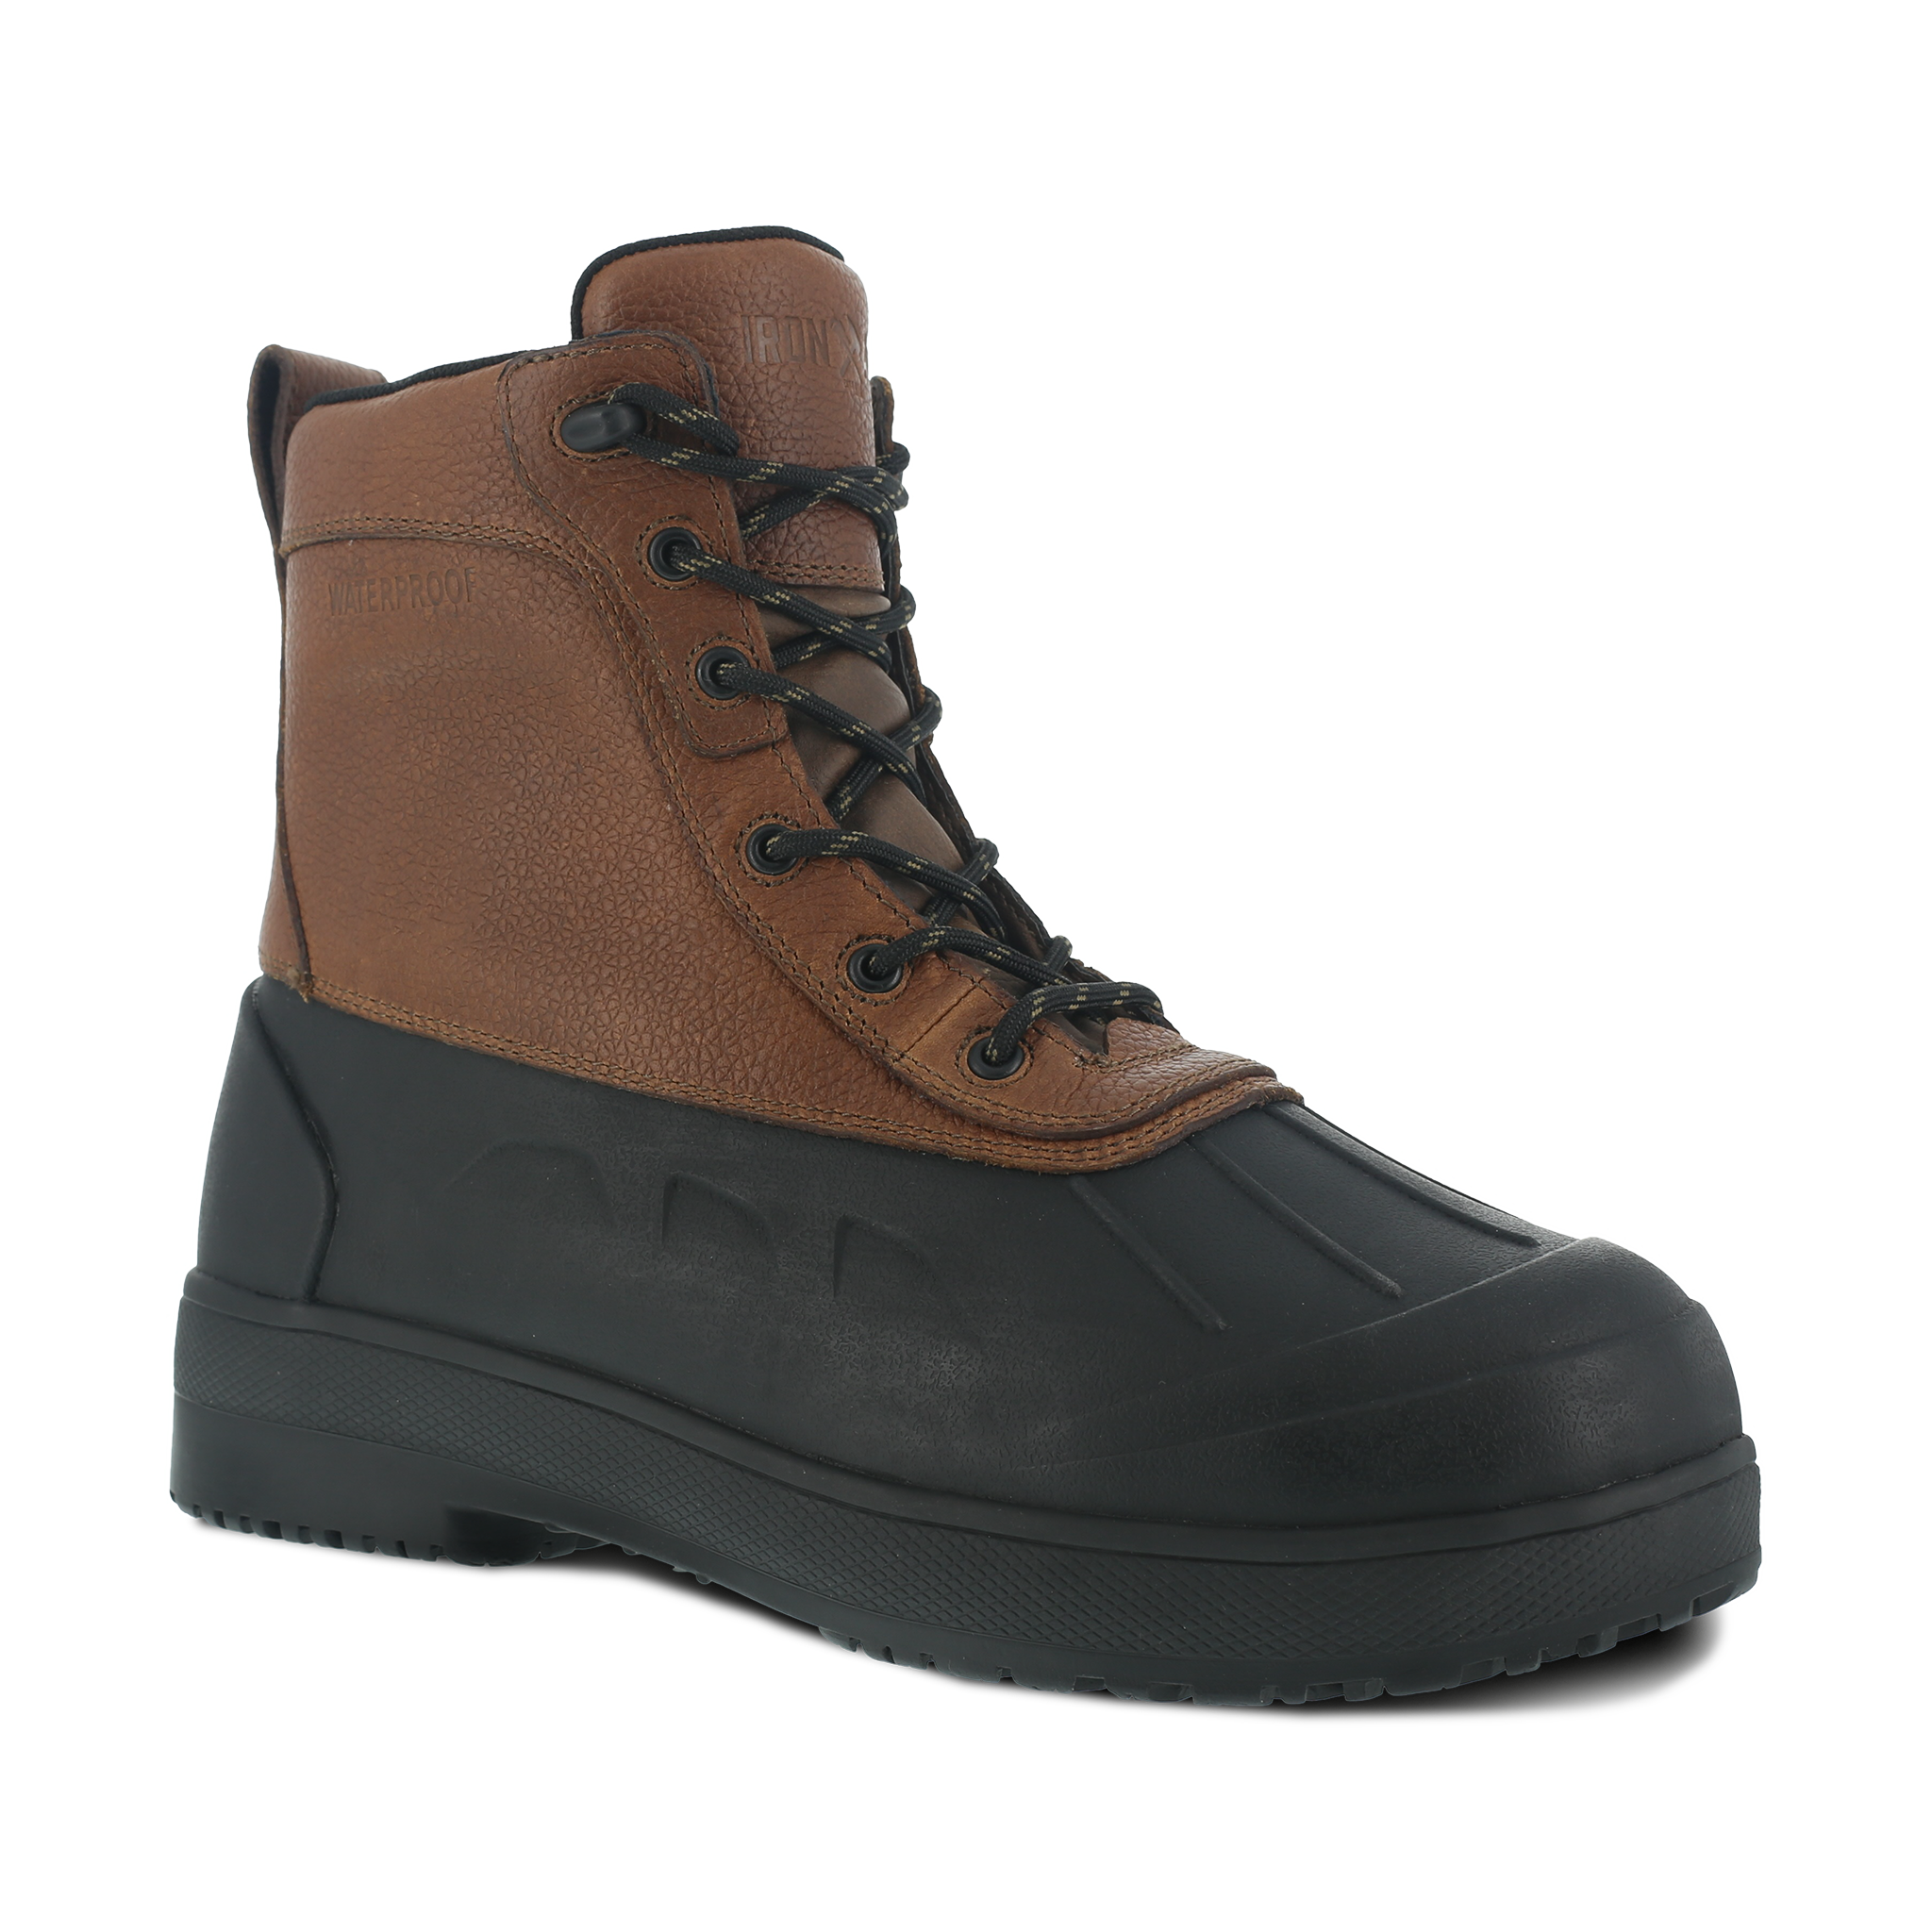 Iron Age Men's Rubber Vamp and Leather Shaft Waterproof Work Boot - IA9650